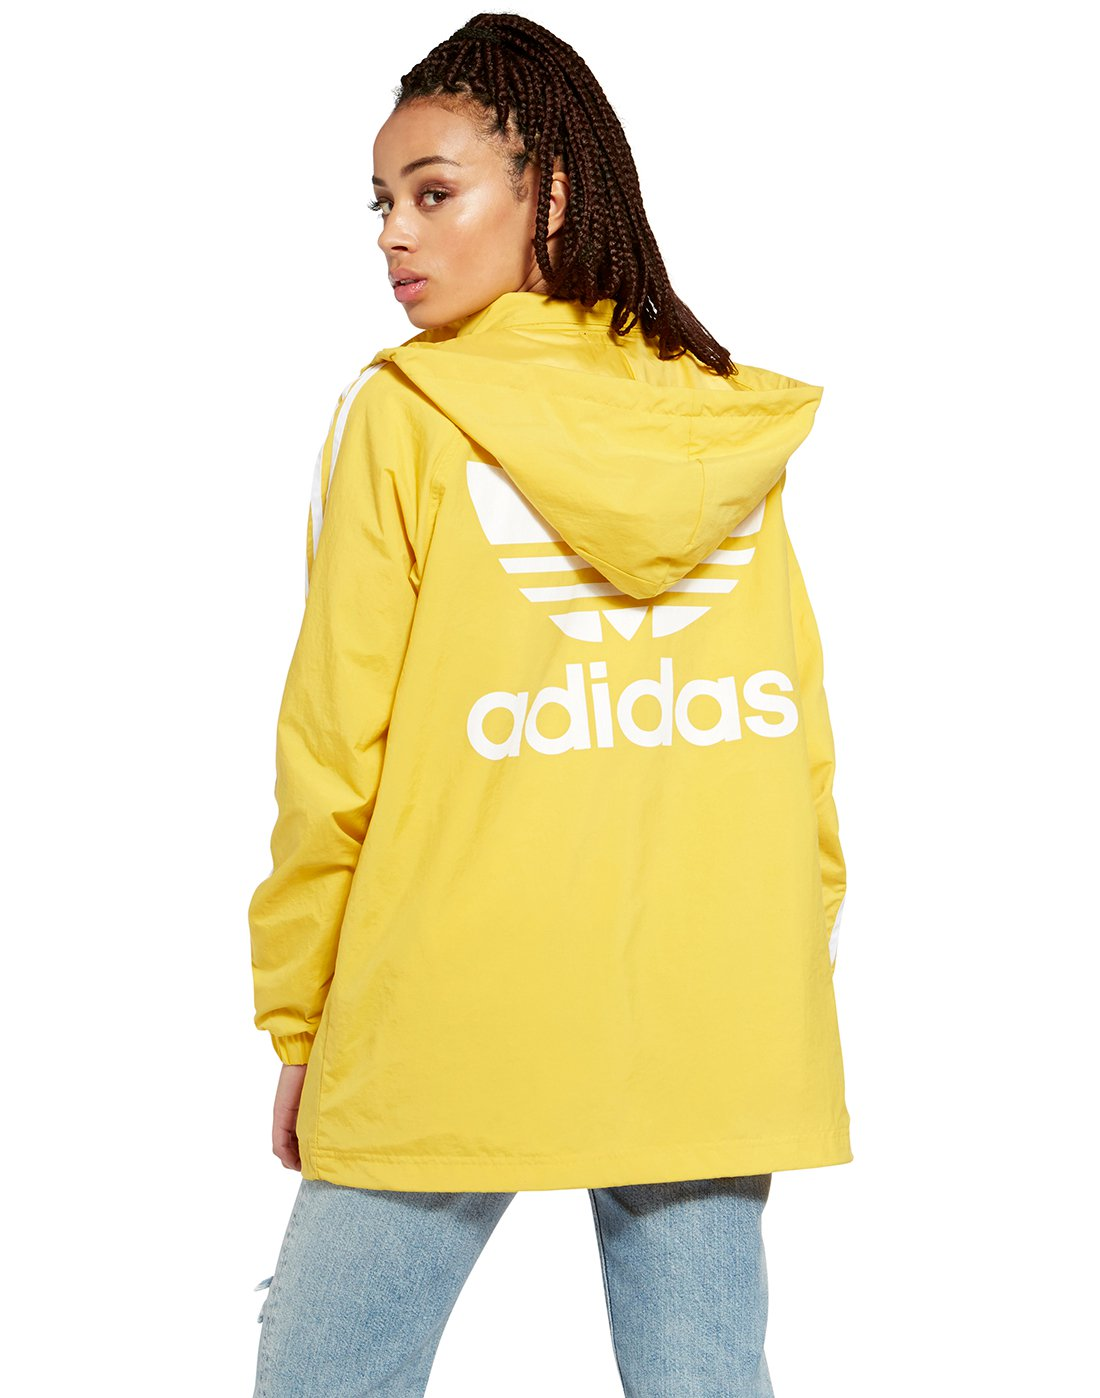 Women's adidas Originals Stadium Jacket | Yellow | Life